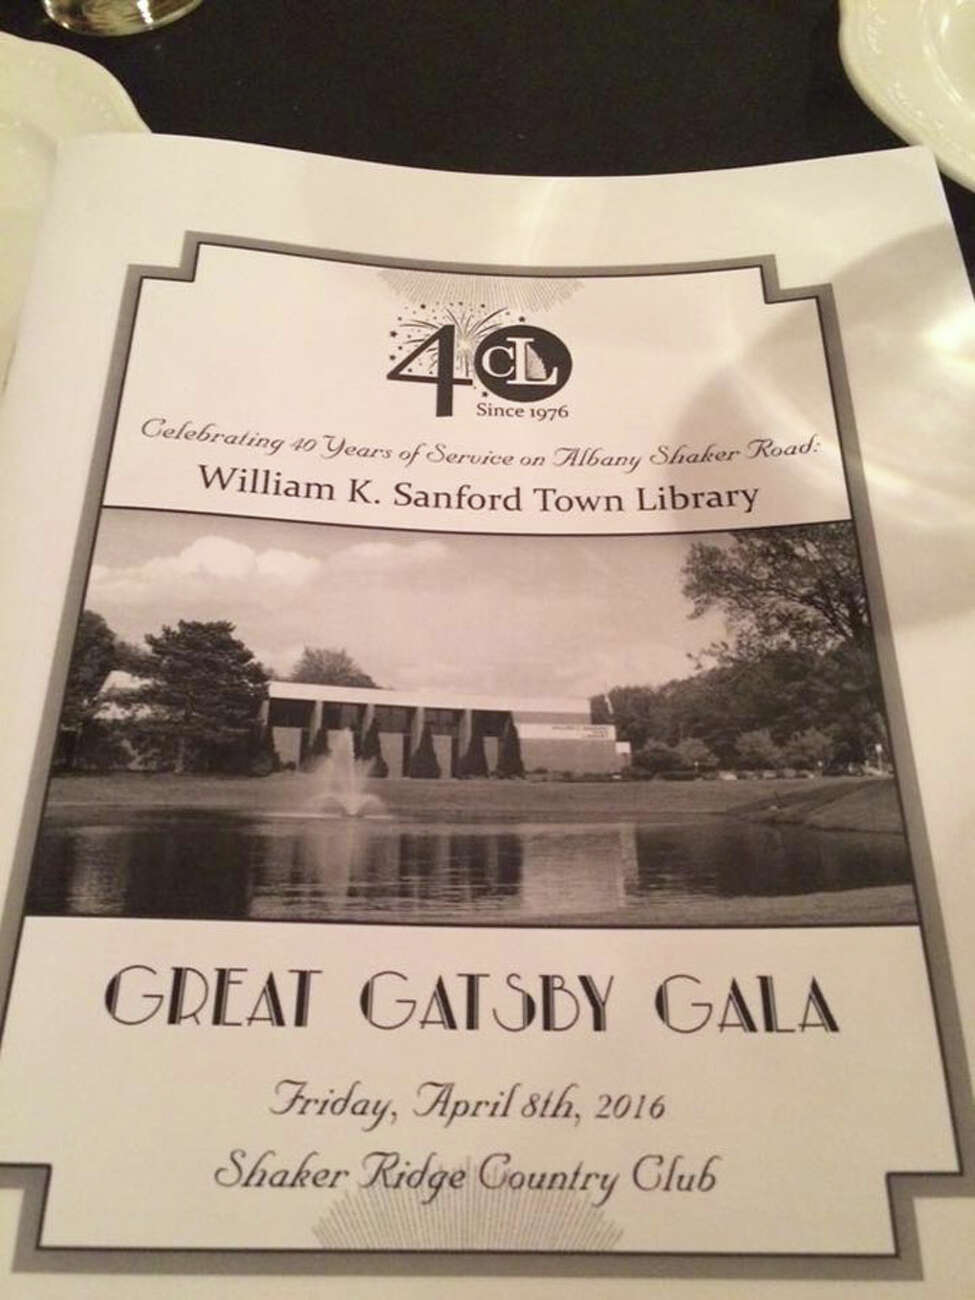 Were you Seen at the Great Gatsby Gala, a fundraising event for the William K. Sanford Town Library in Colonie, held at Shaker Ridge Country Club in Colonie on Friday, April 8, 2016?